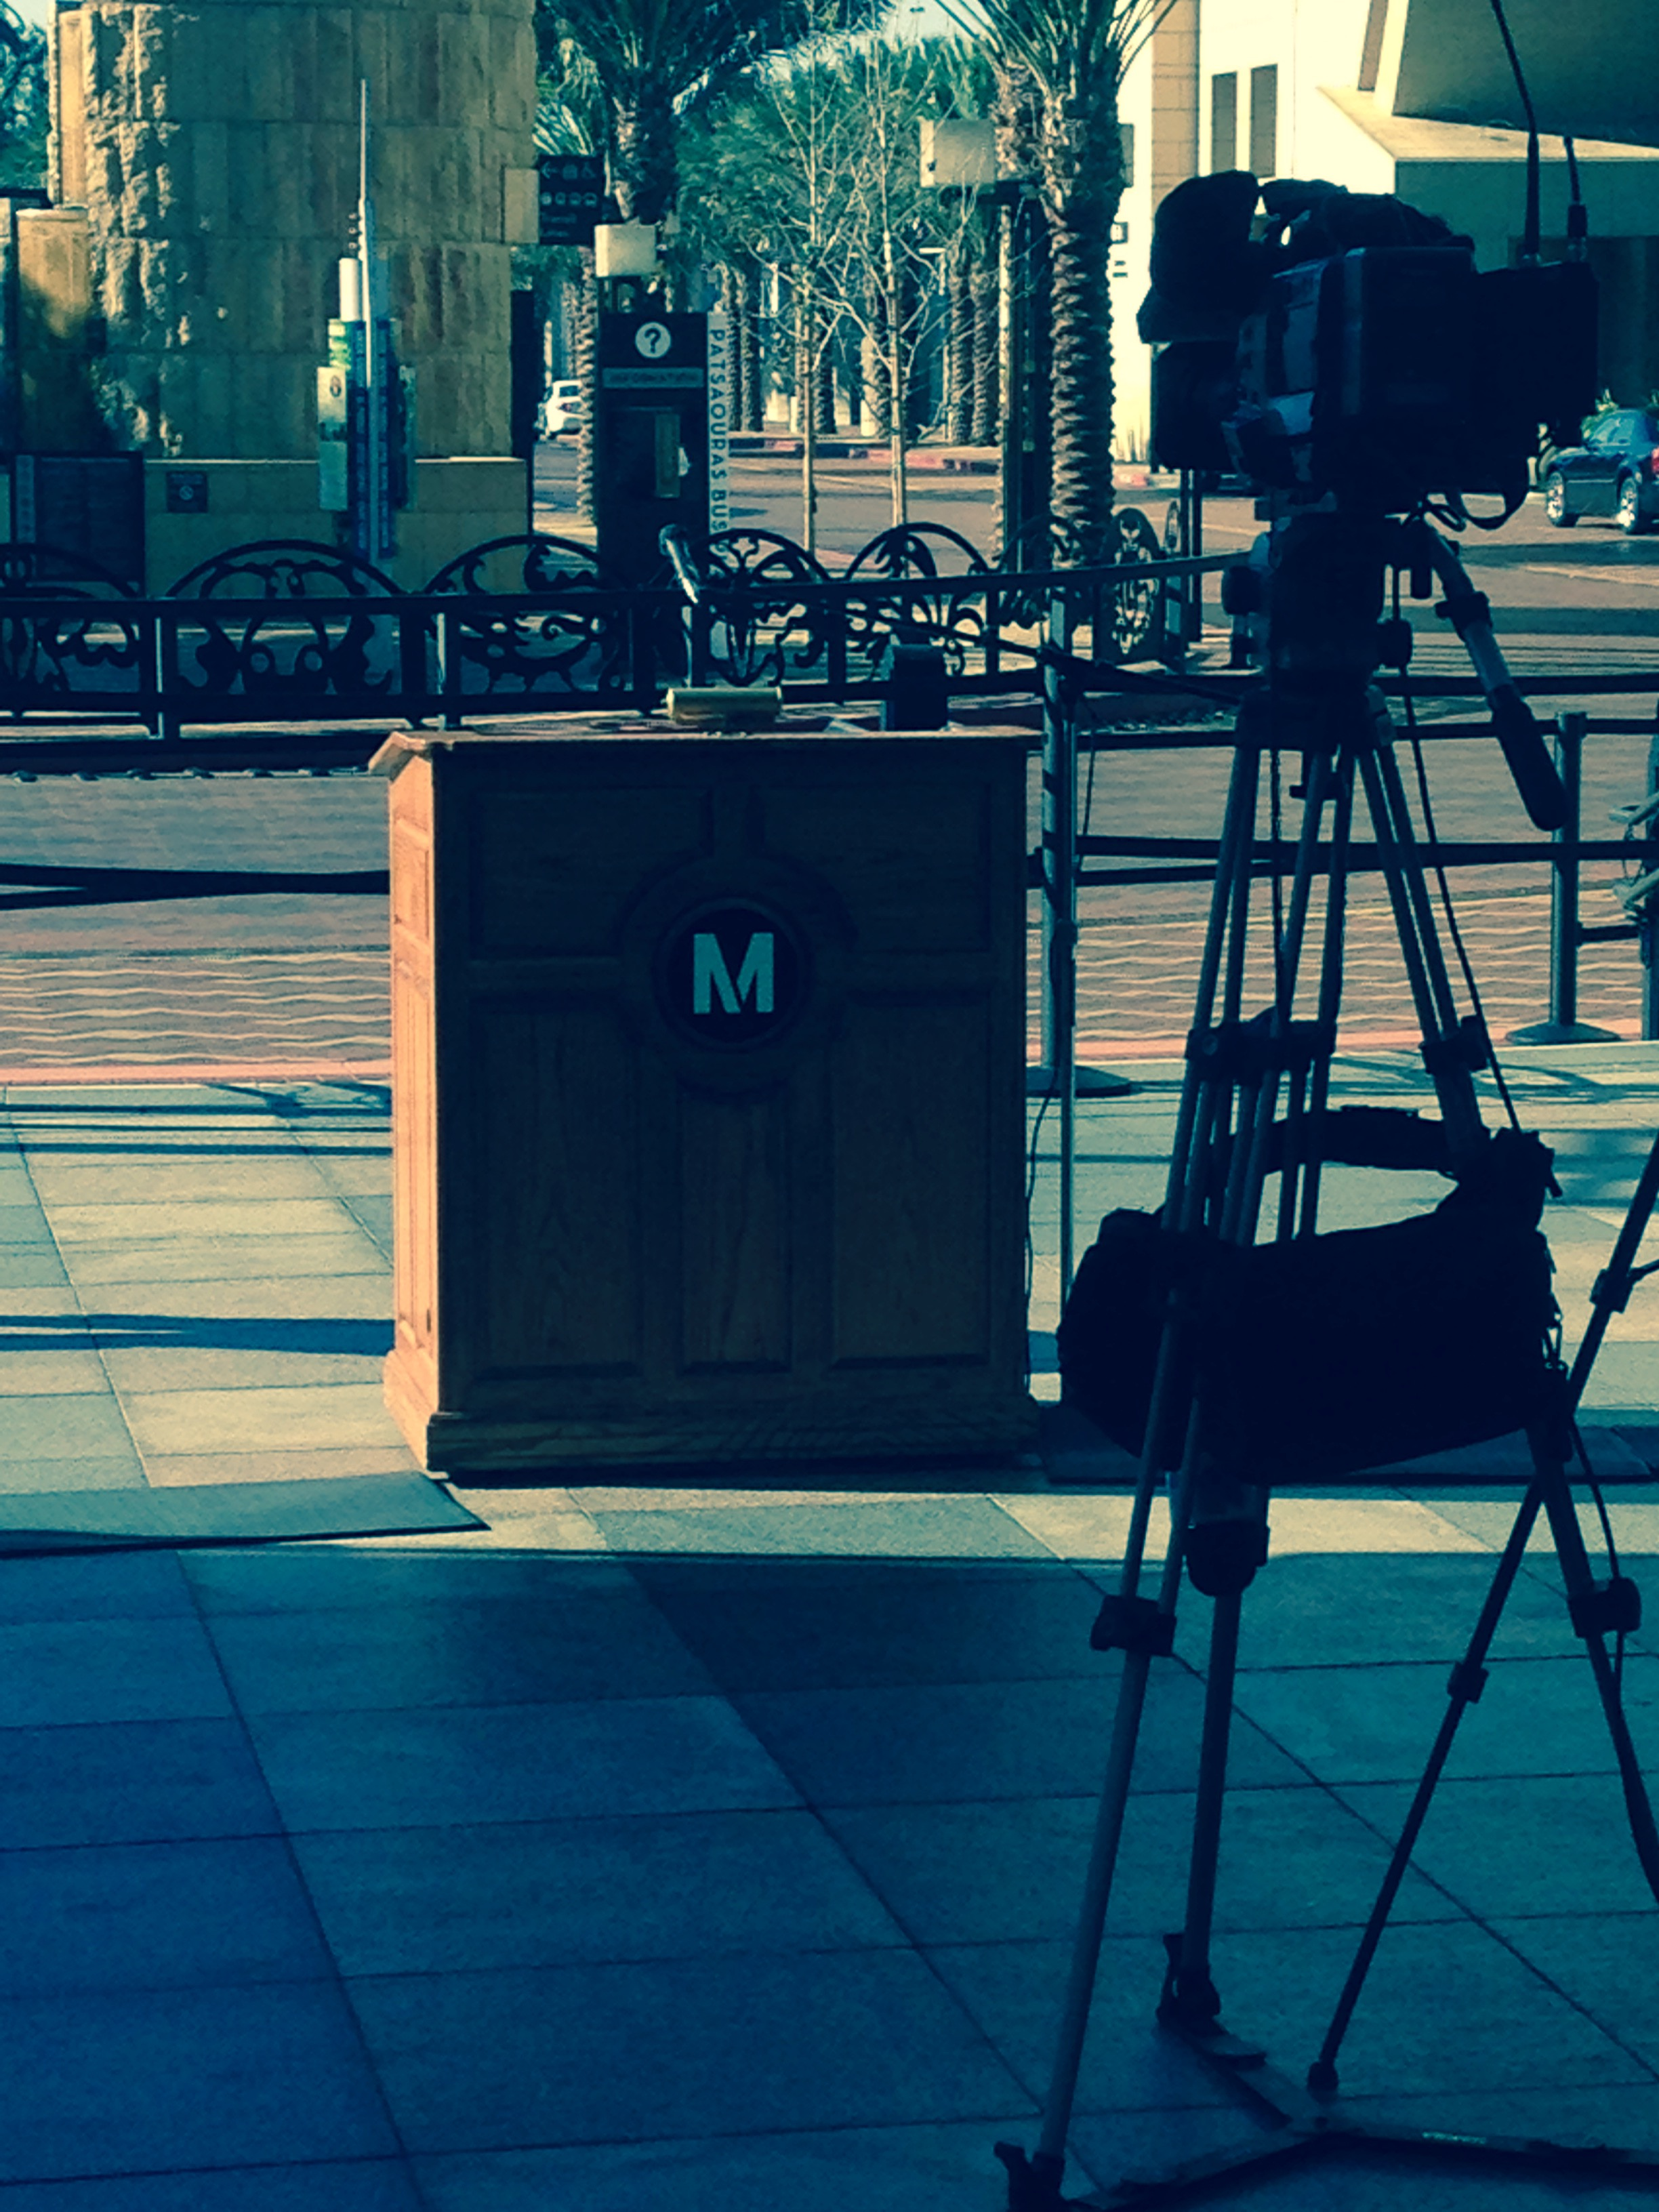 The media gathers to see the announcement of a new CEO at LA Metro.